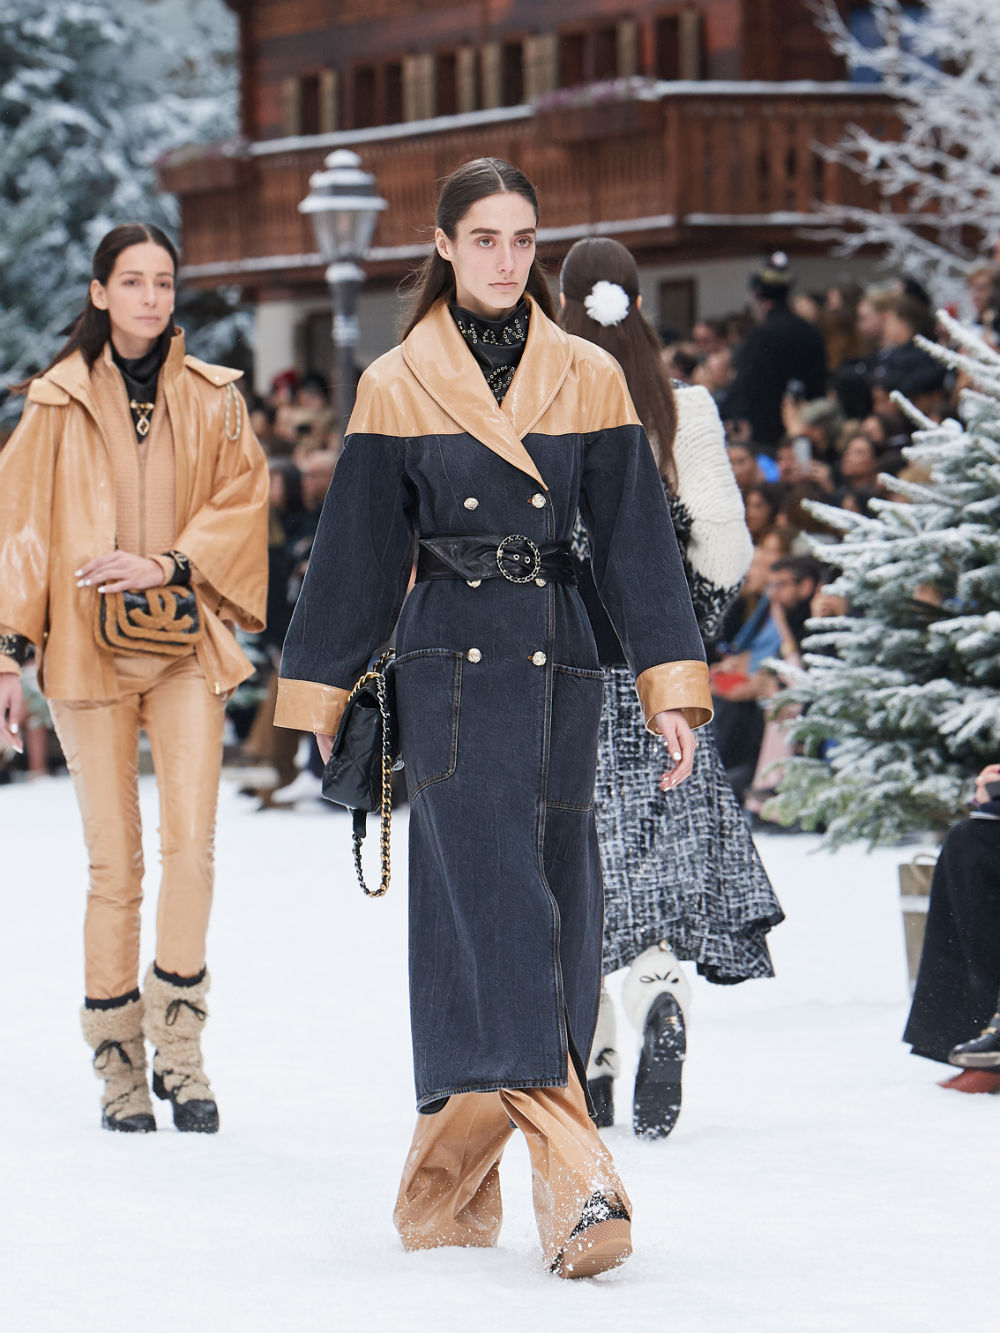 FALL-WINTER 201920 READY-TO-WEAR COLLECTION (28)